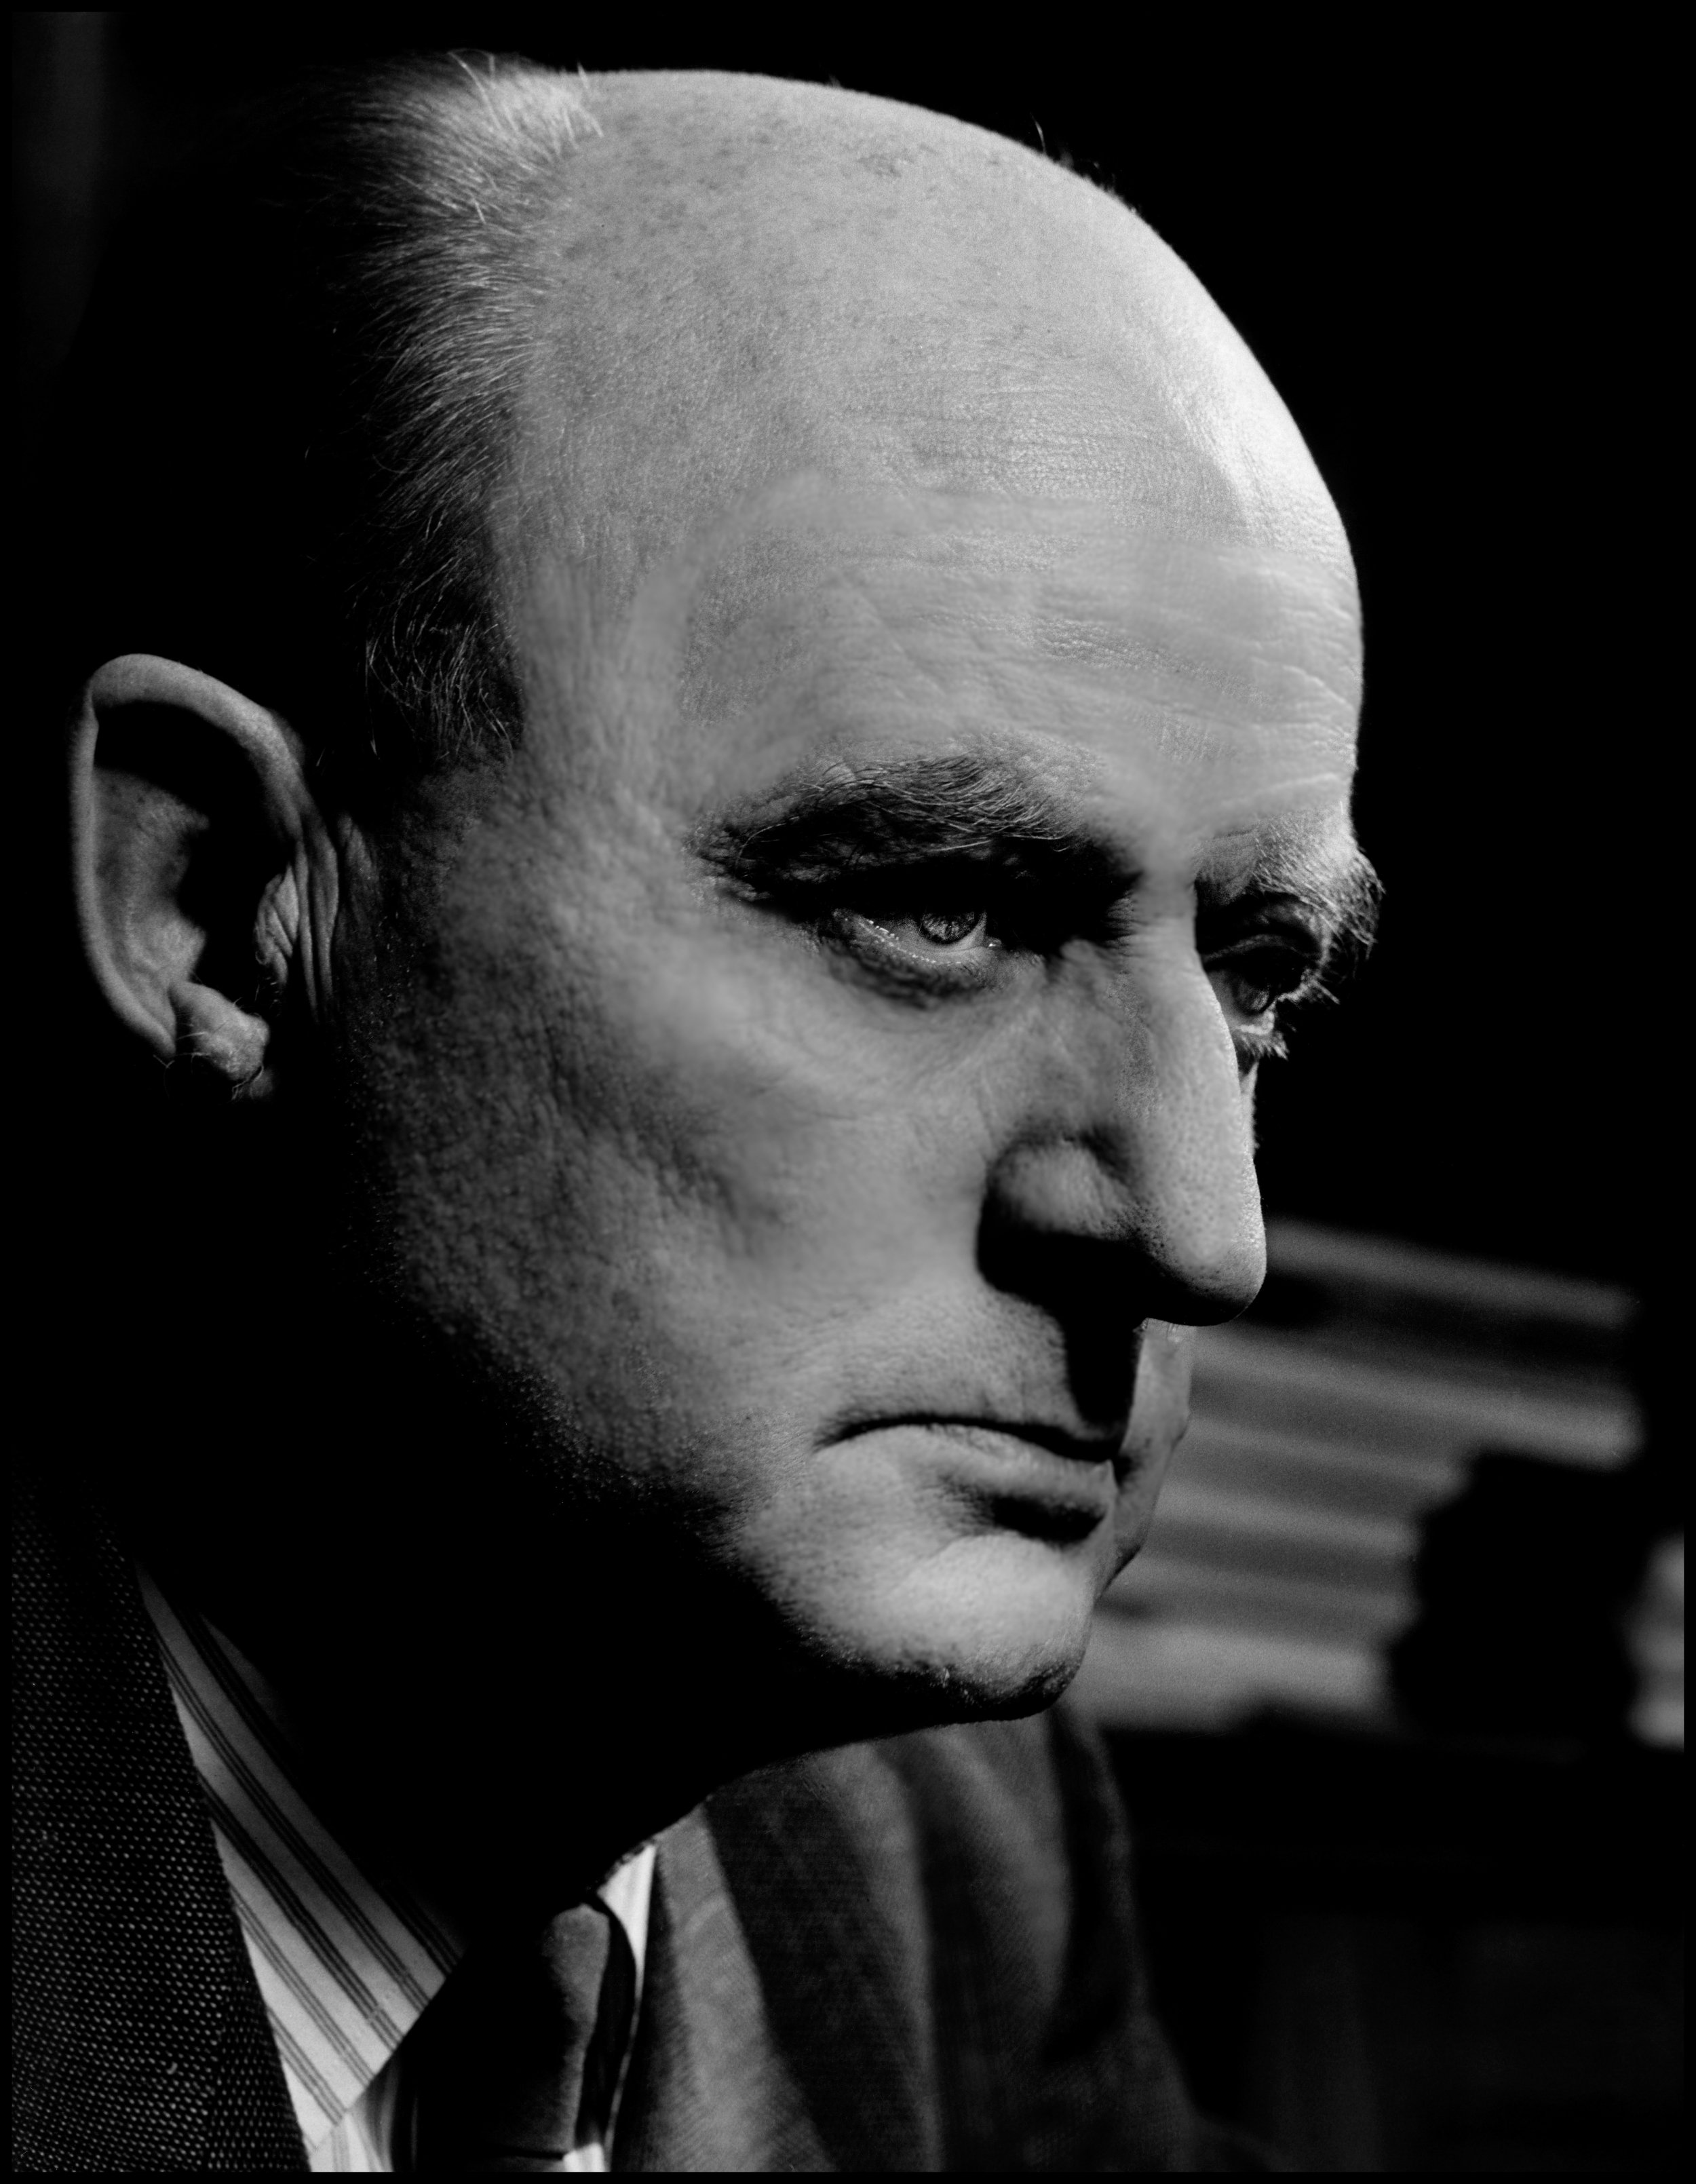 Who Is Reinhold Niebuhr And What Is His Connection To James Comey?